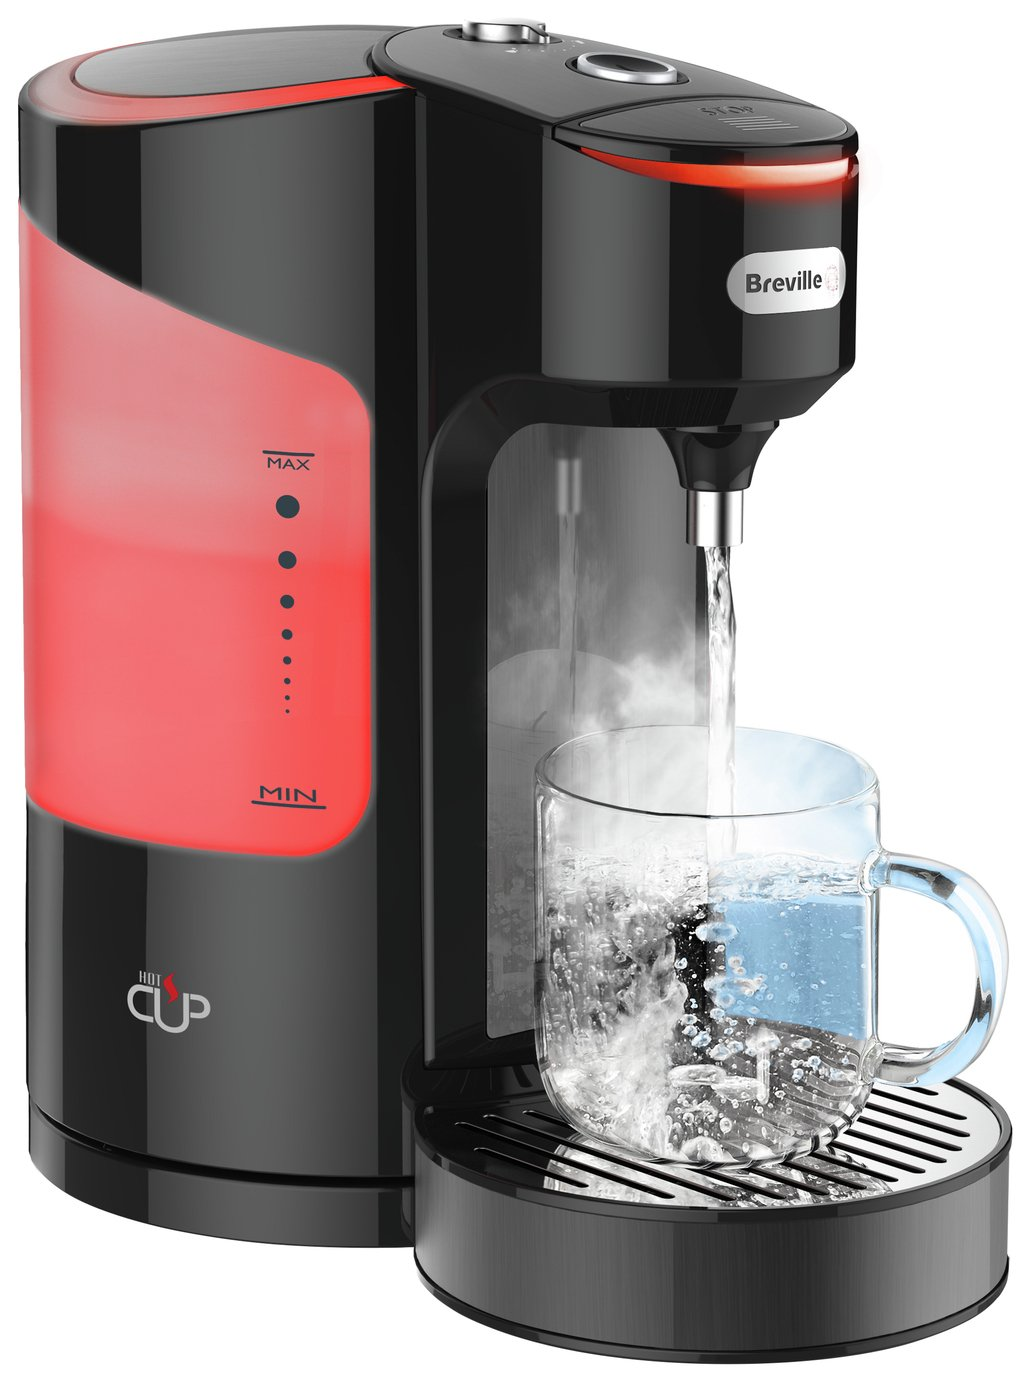 Image of Breville - VKJ784 Hot Cup with Variable Water - Dispenser